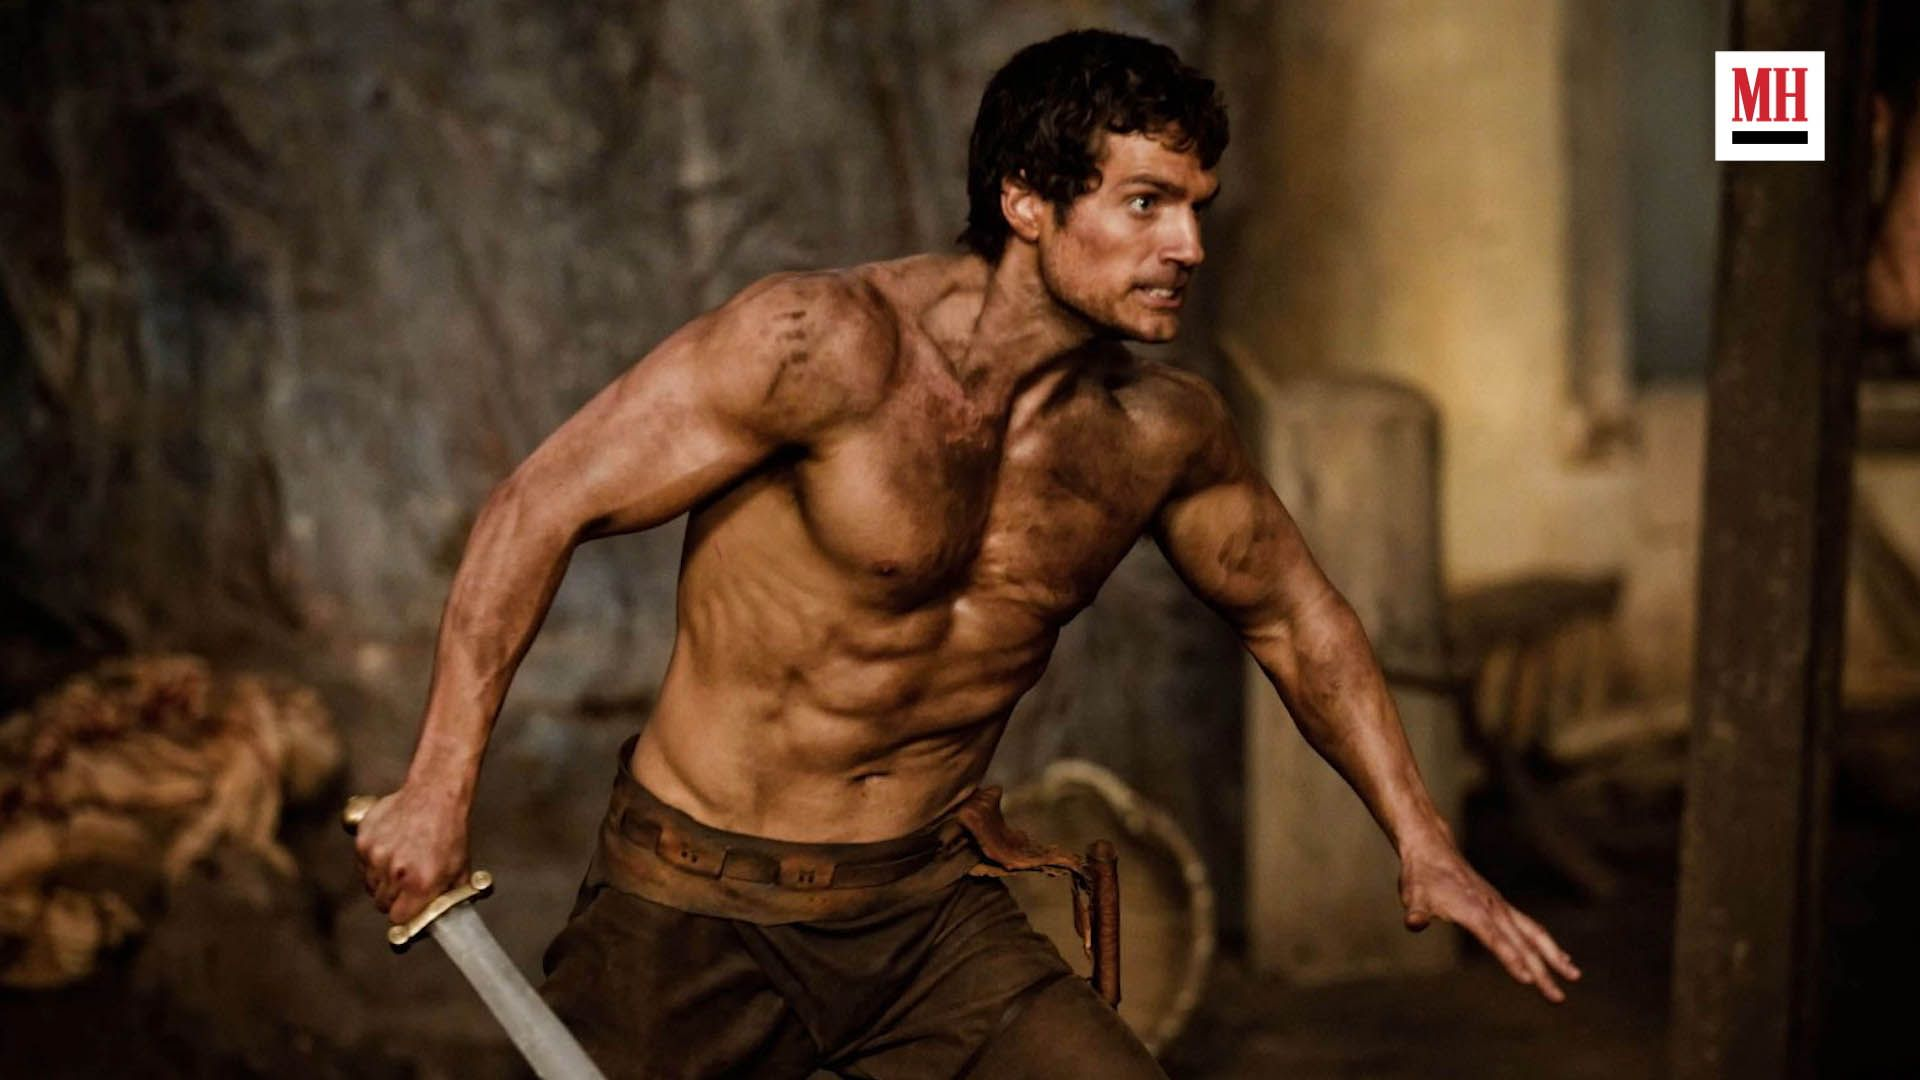 Here's What it Feels Like to Do Henry Cavill's Superman Diet and Training Routine